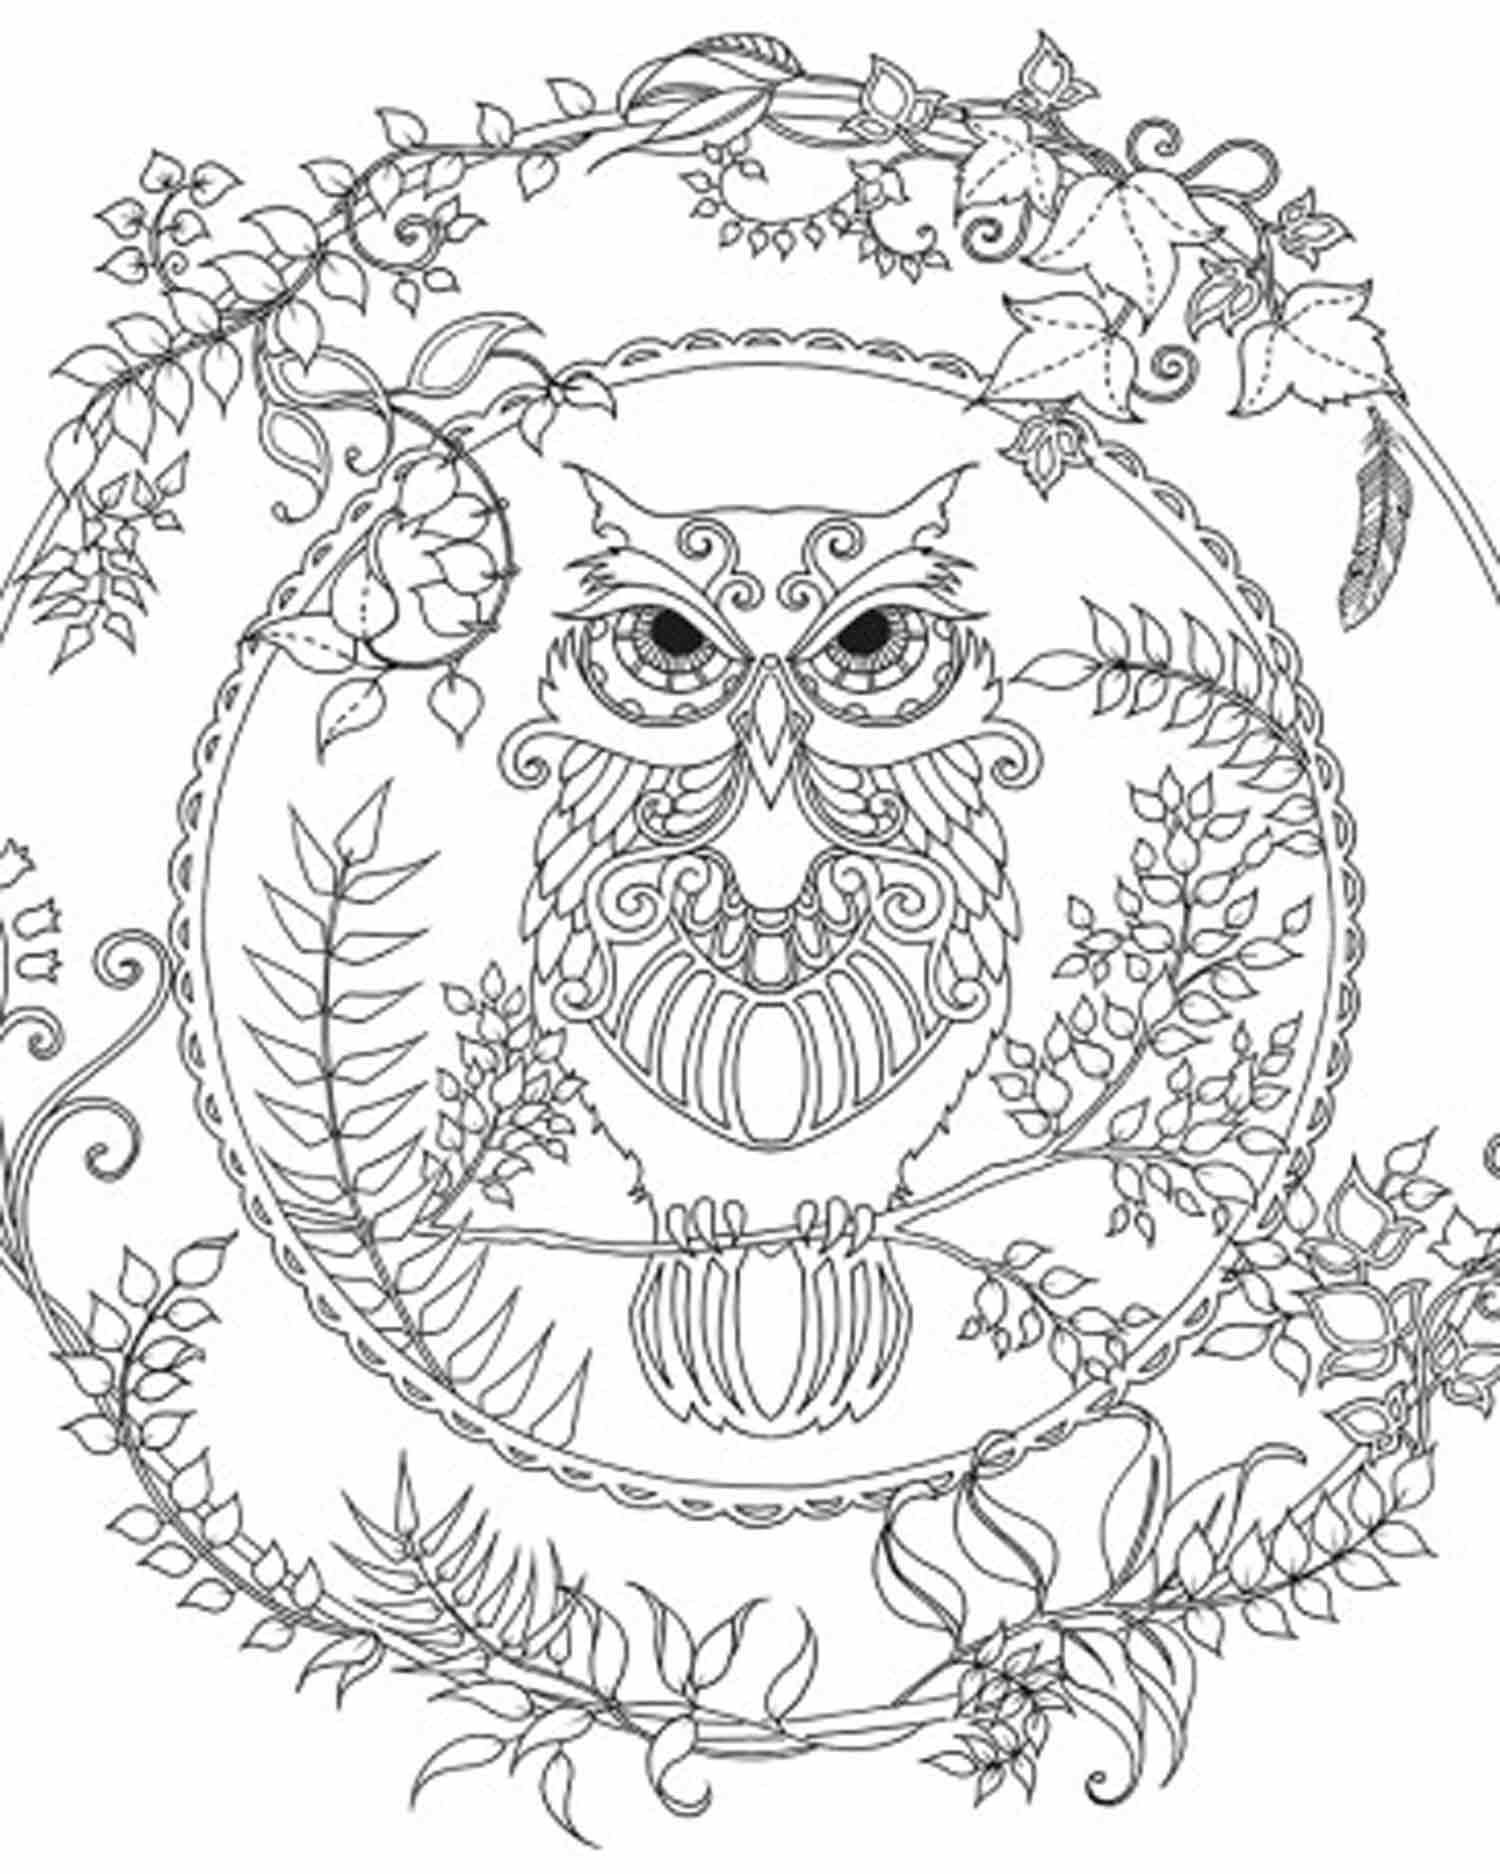 How much is the coloring book for adults - Straight From The Pages Of Enchanted Forest By Johanna Basford S Adult Coloring Book Now It Is Your Turn Post Your Finished Artwork Using The Comment